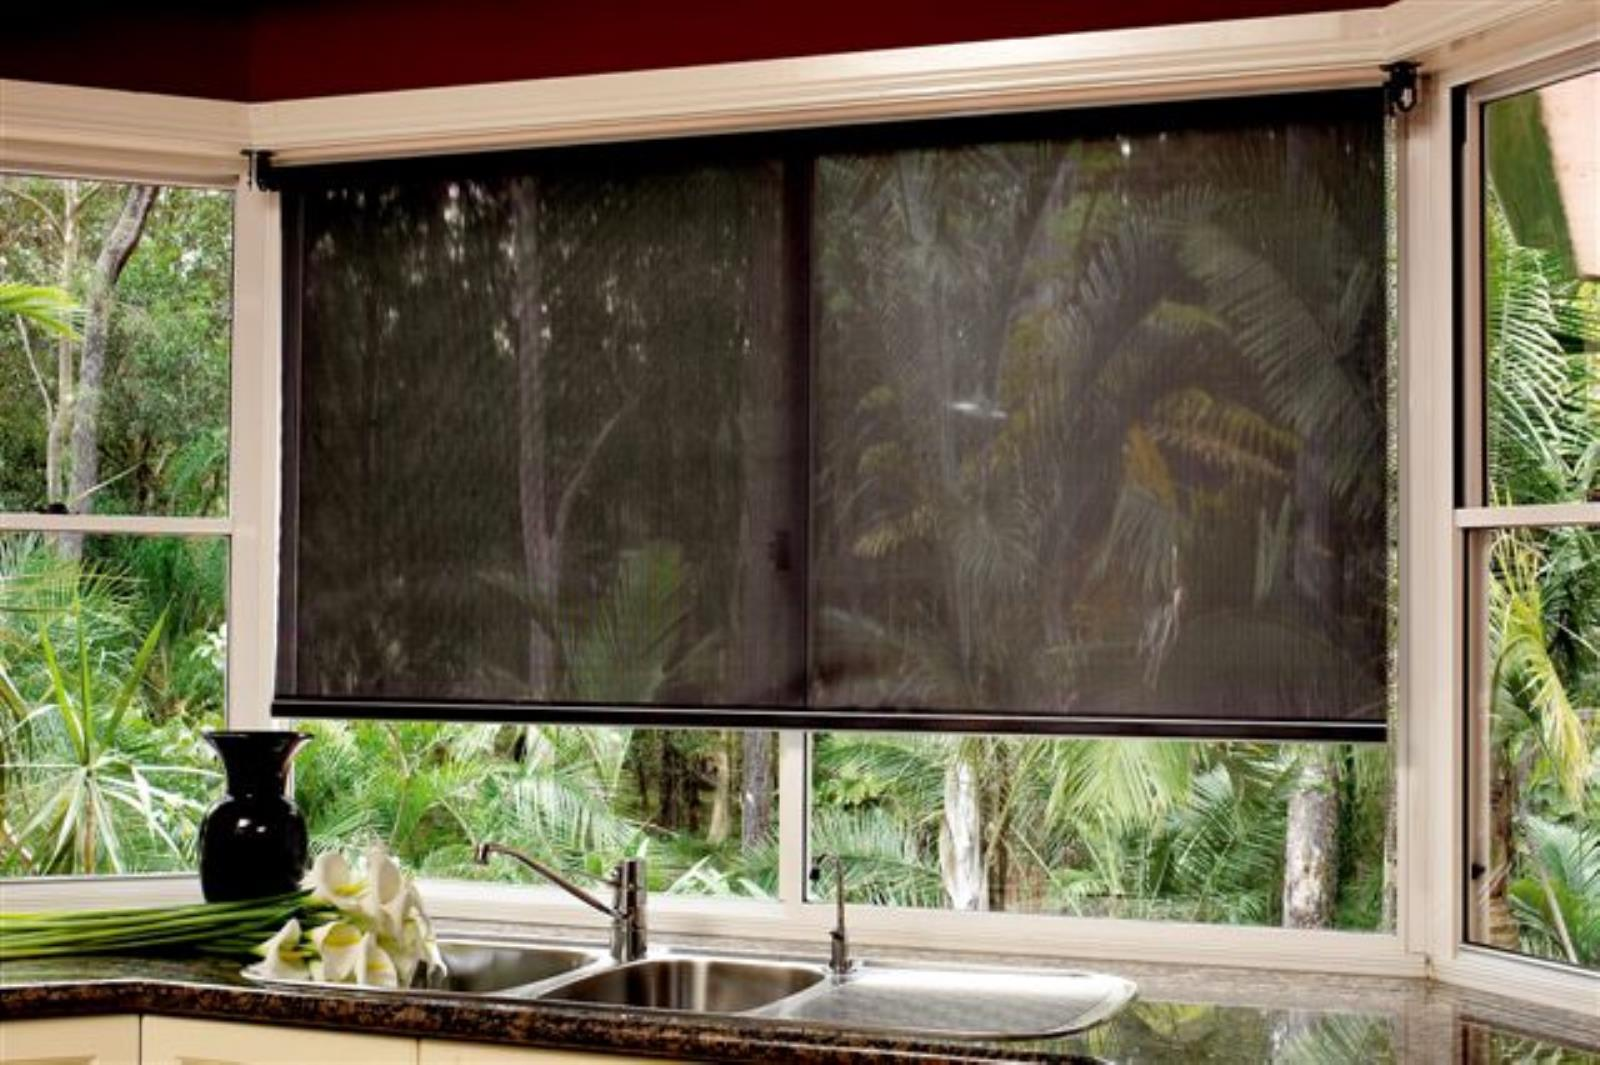 ranch have as the cost solar you shades function denver blinds effective and in a blocking aesthetic option need window might sun co highlands coverings